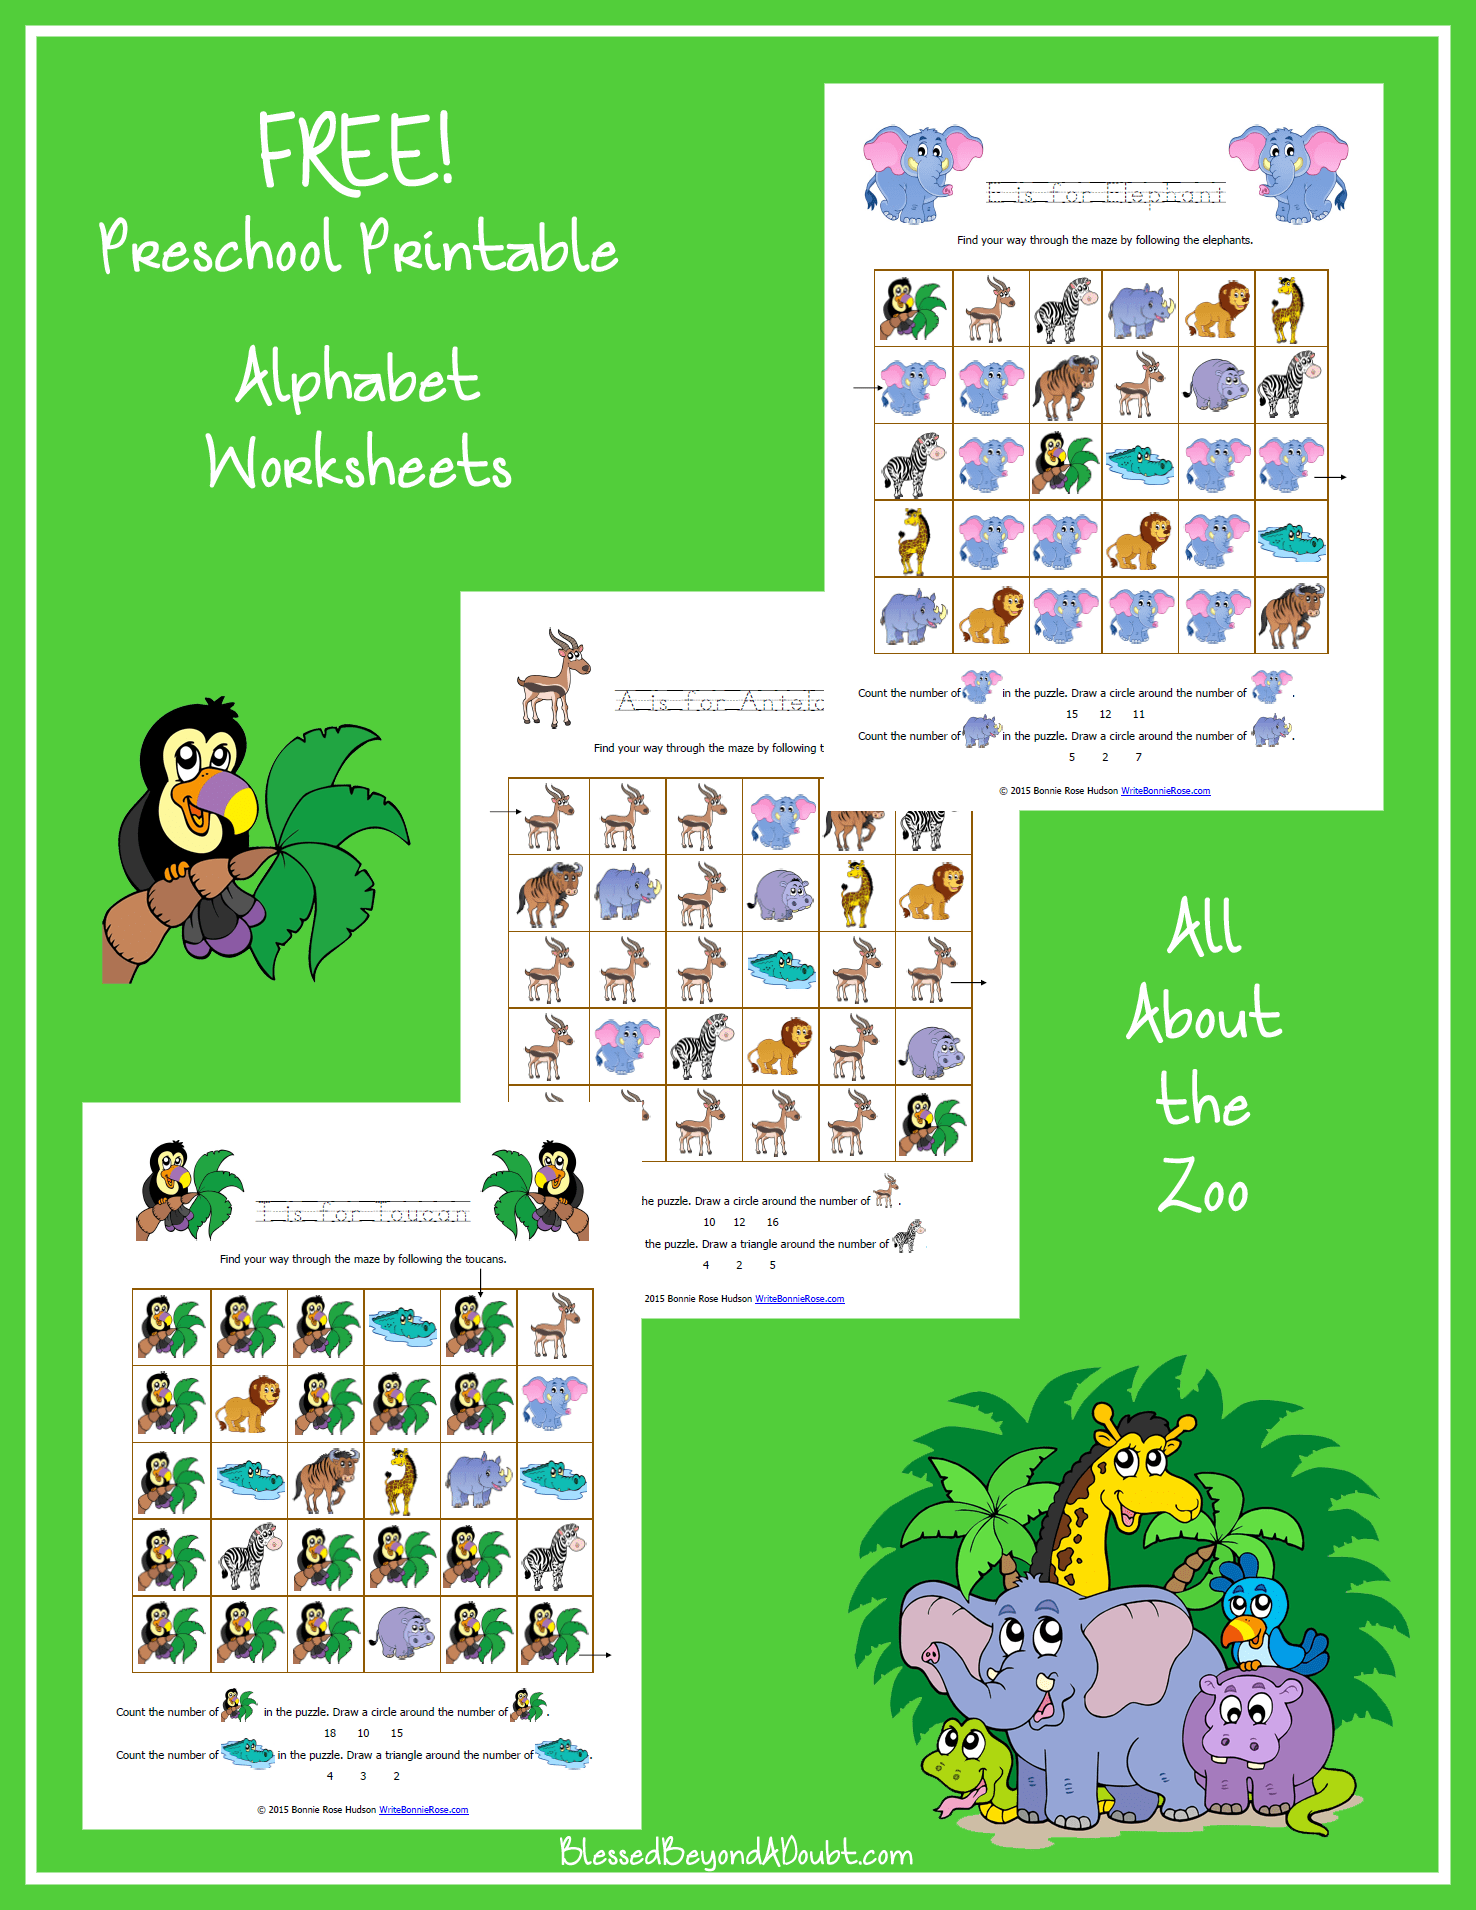 Free Worksheet For Preschool